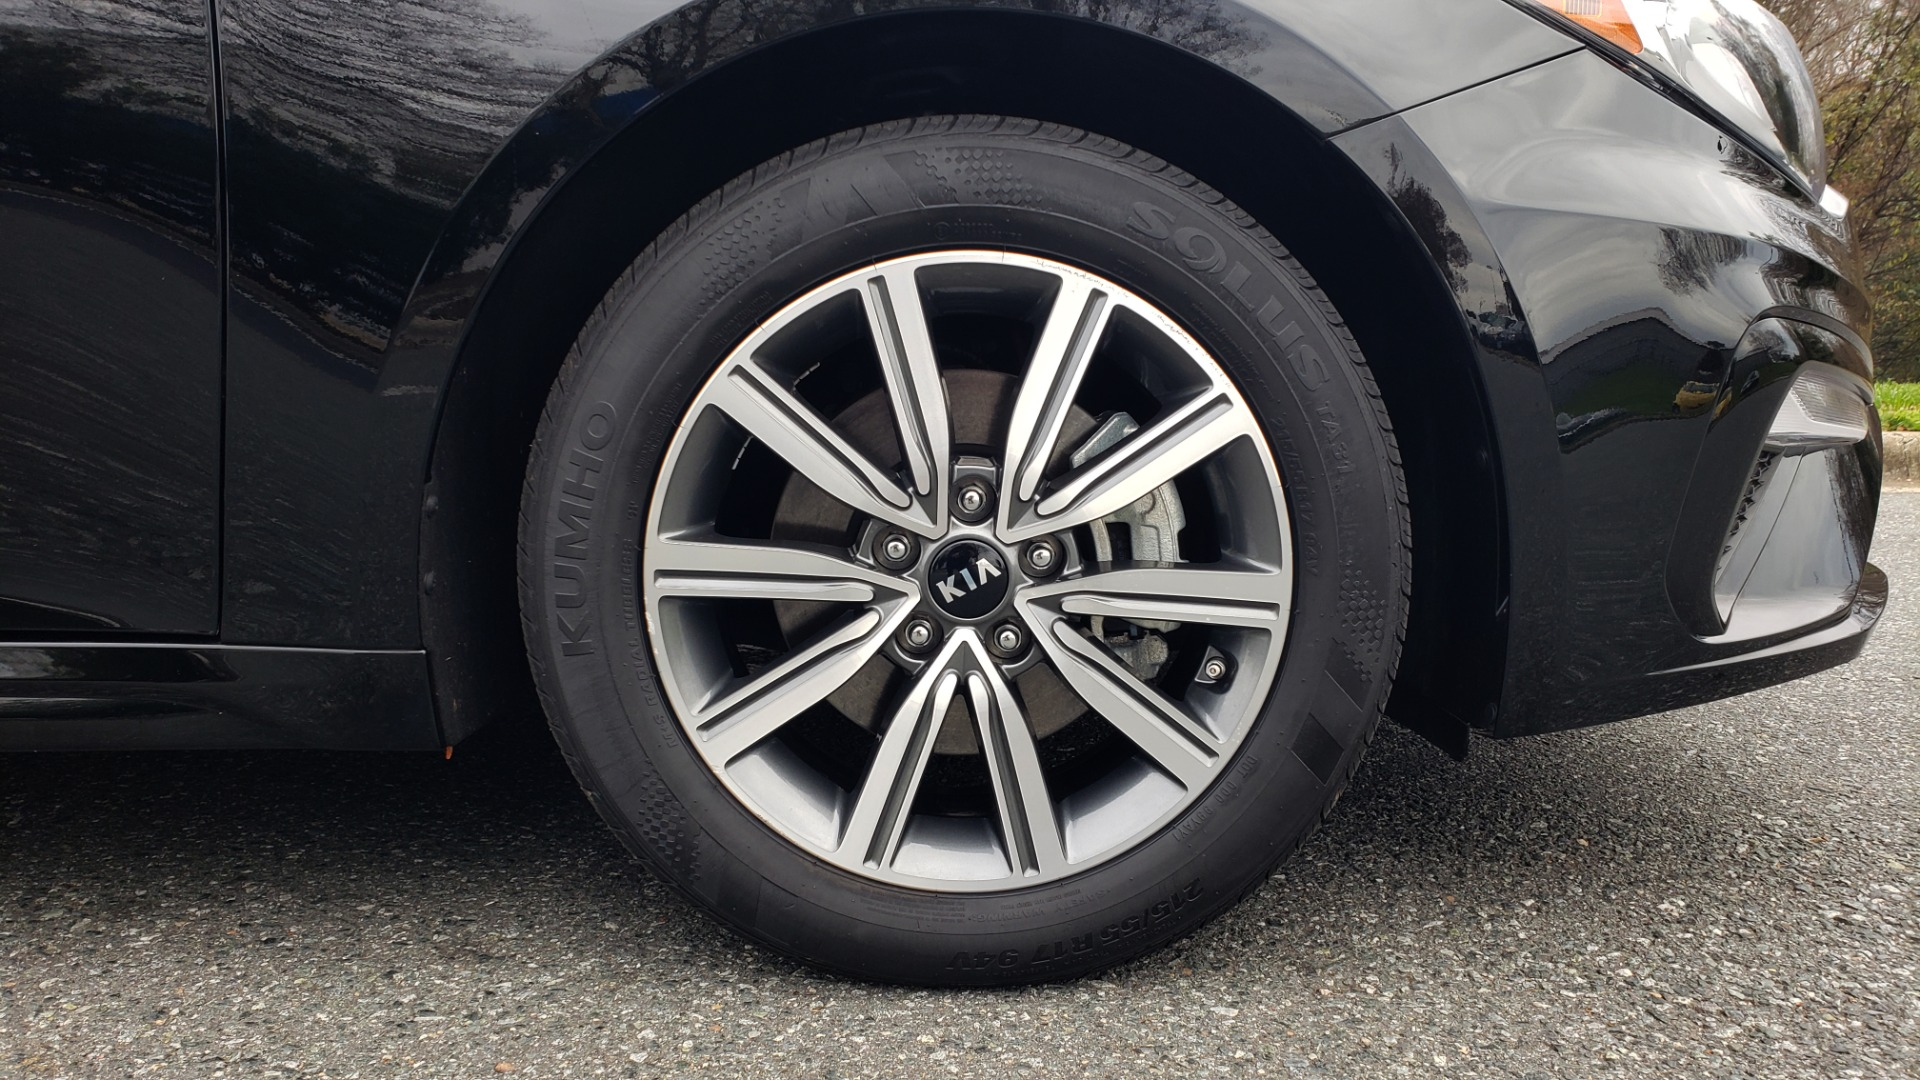 Used 2019 Kia OPTIMA LX AUTO / 2.4L 4-CYL / 6-SPD AUTO / REARVIEW / LOW MILES for sale $17,995 at Formula Imports in Charlotte NC 28227 78